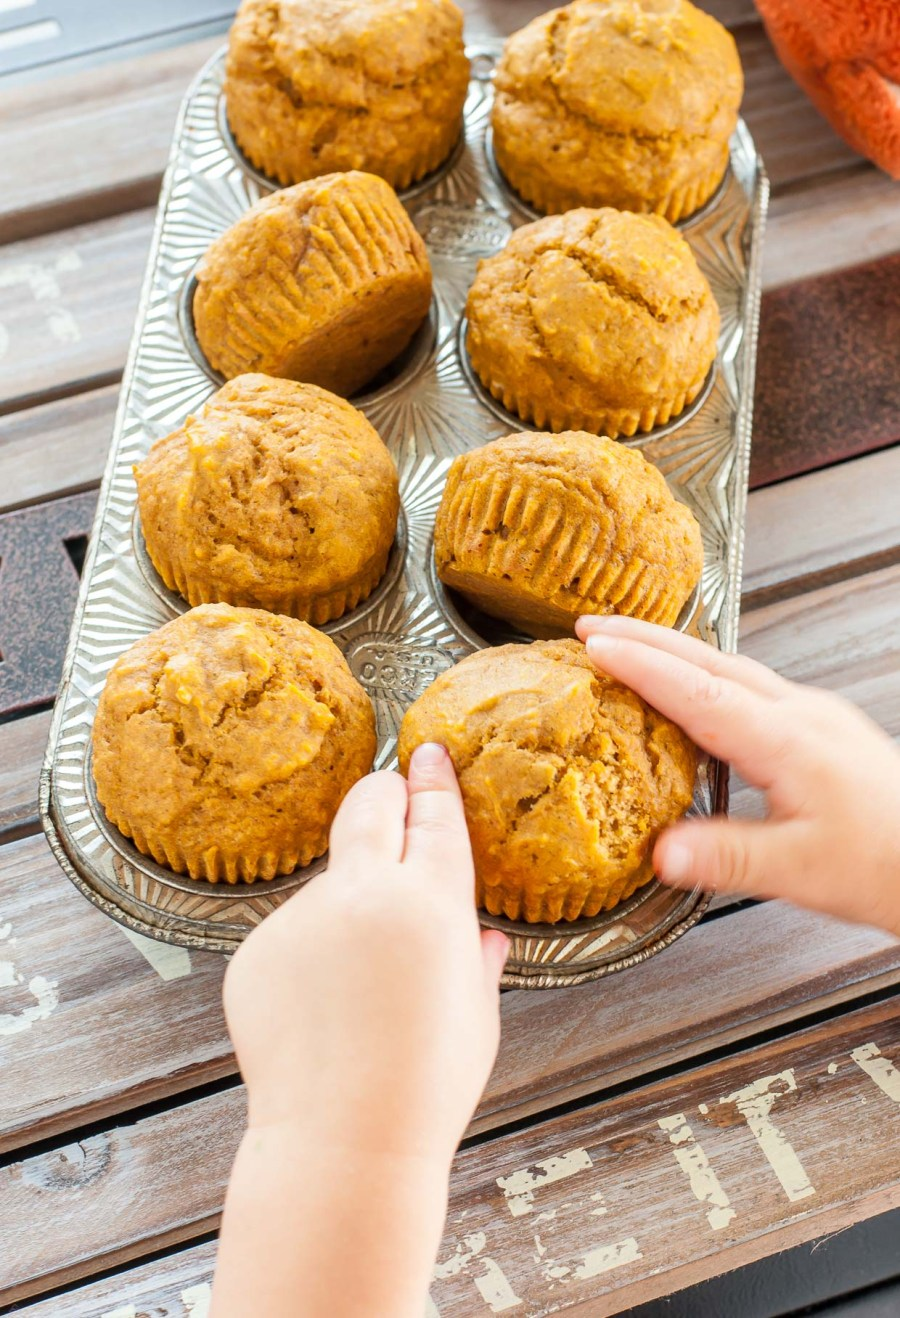 We love making these kid-friendly pumpkin muffins. They're super simple, gloriously healthy, and sweetened naturally with maple syrup!